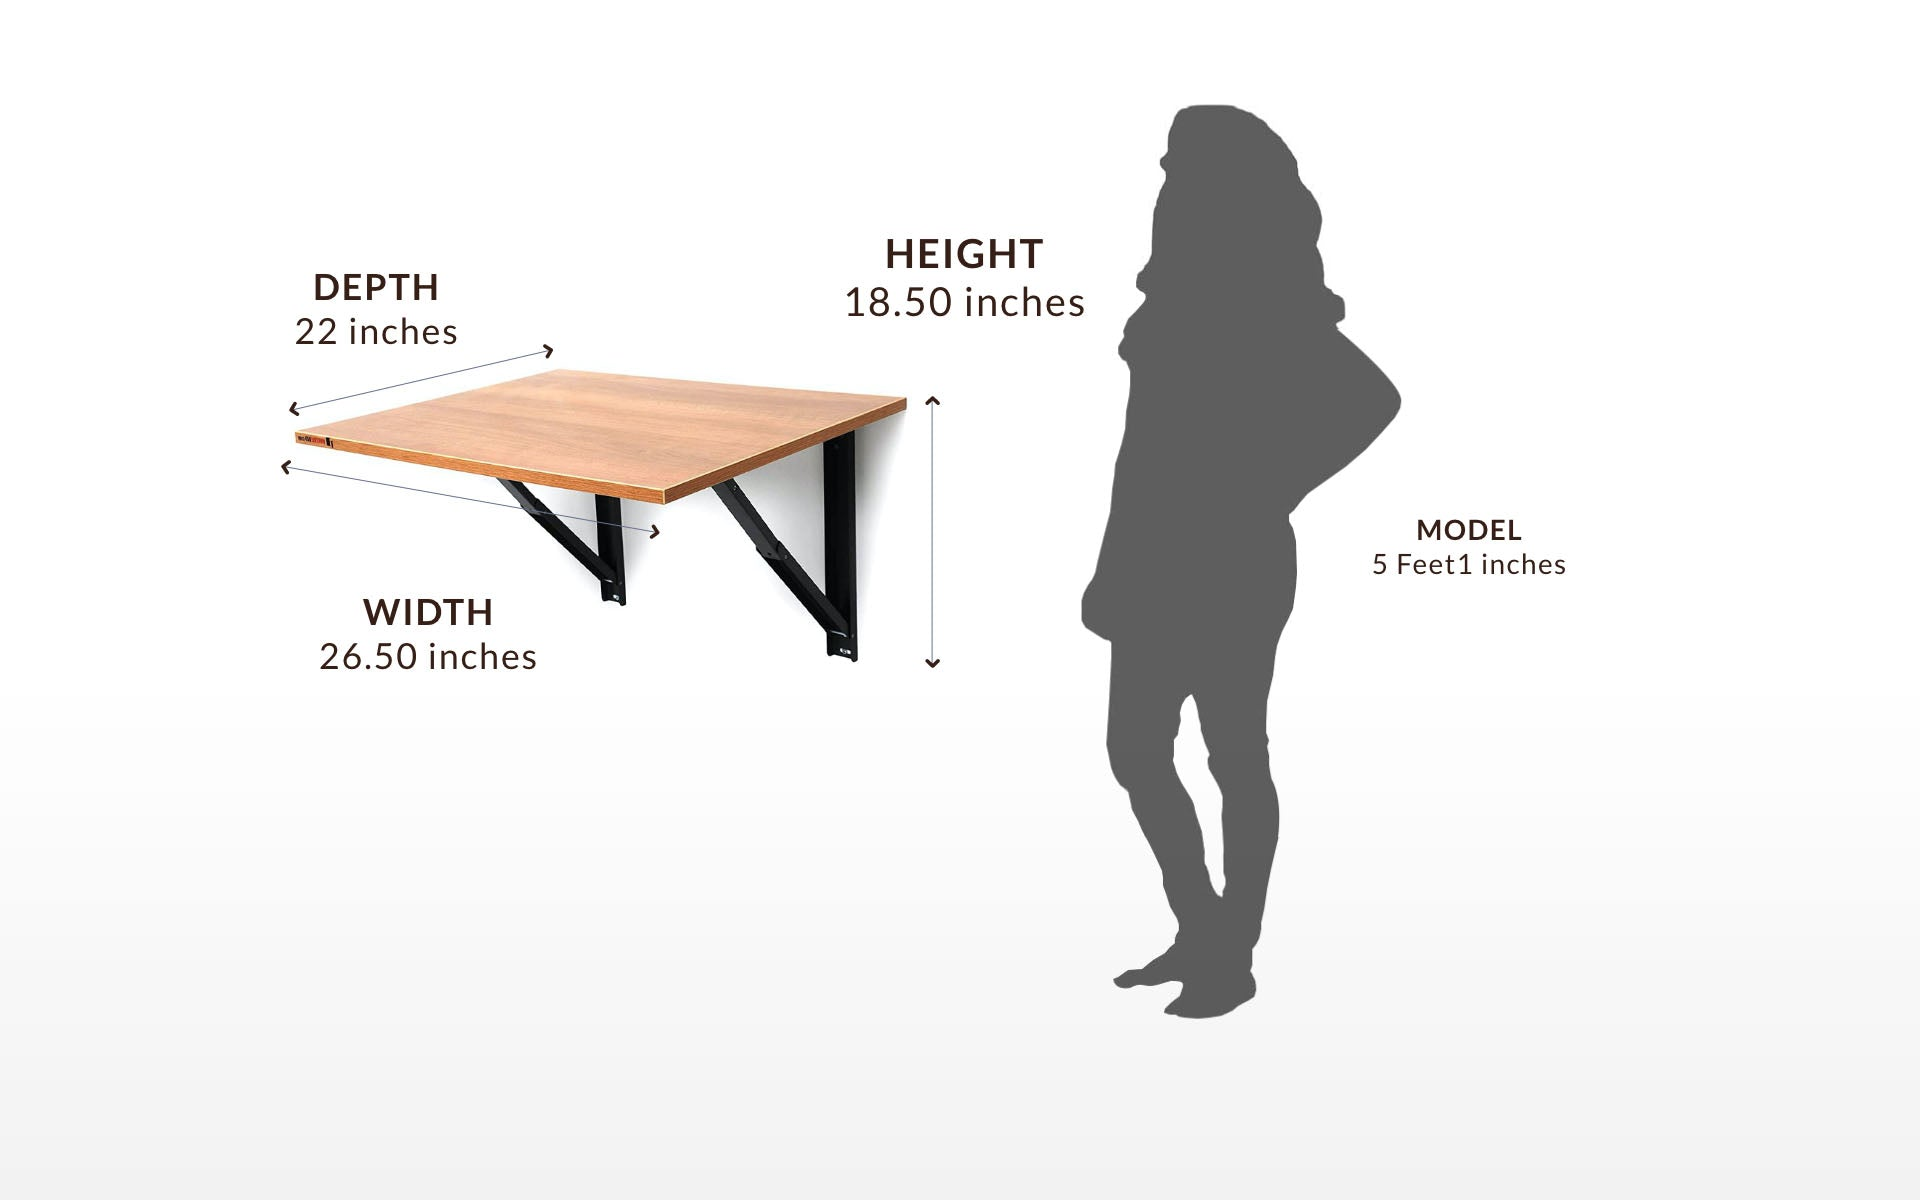 iDesk Medium for Study, Office, Kitchen, Lift Top Table